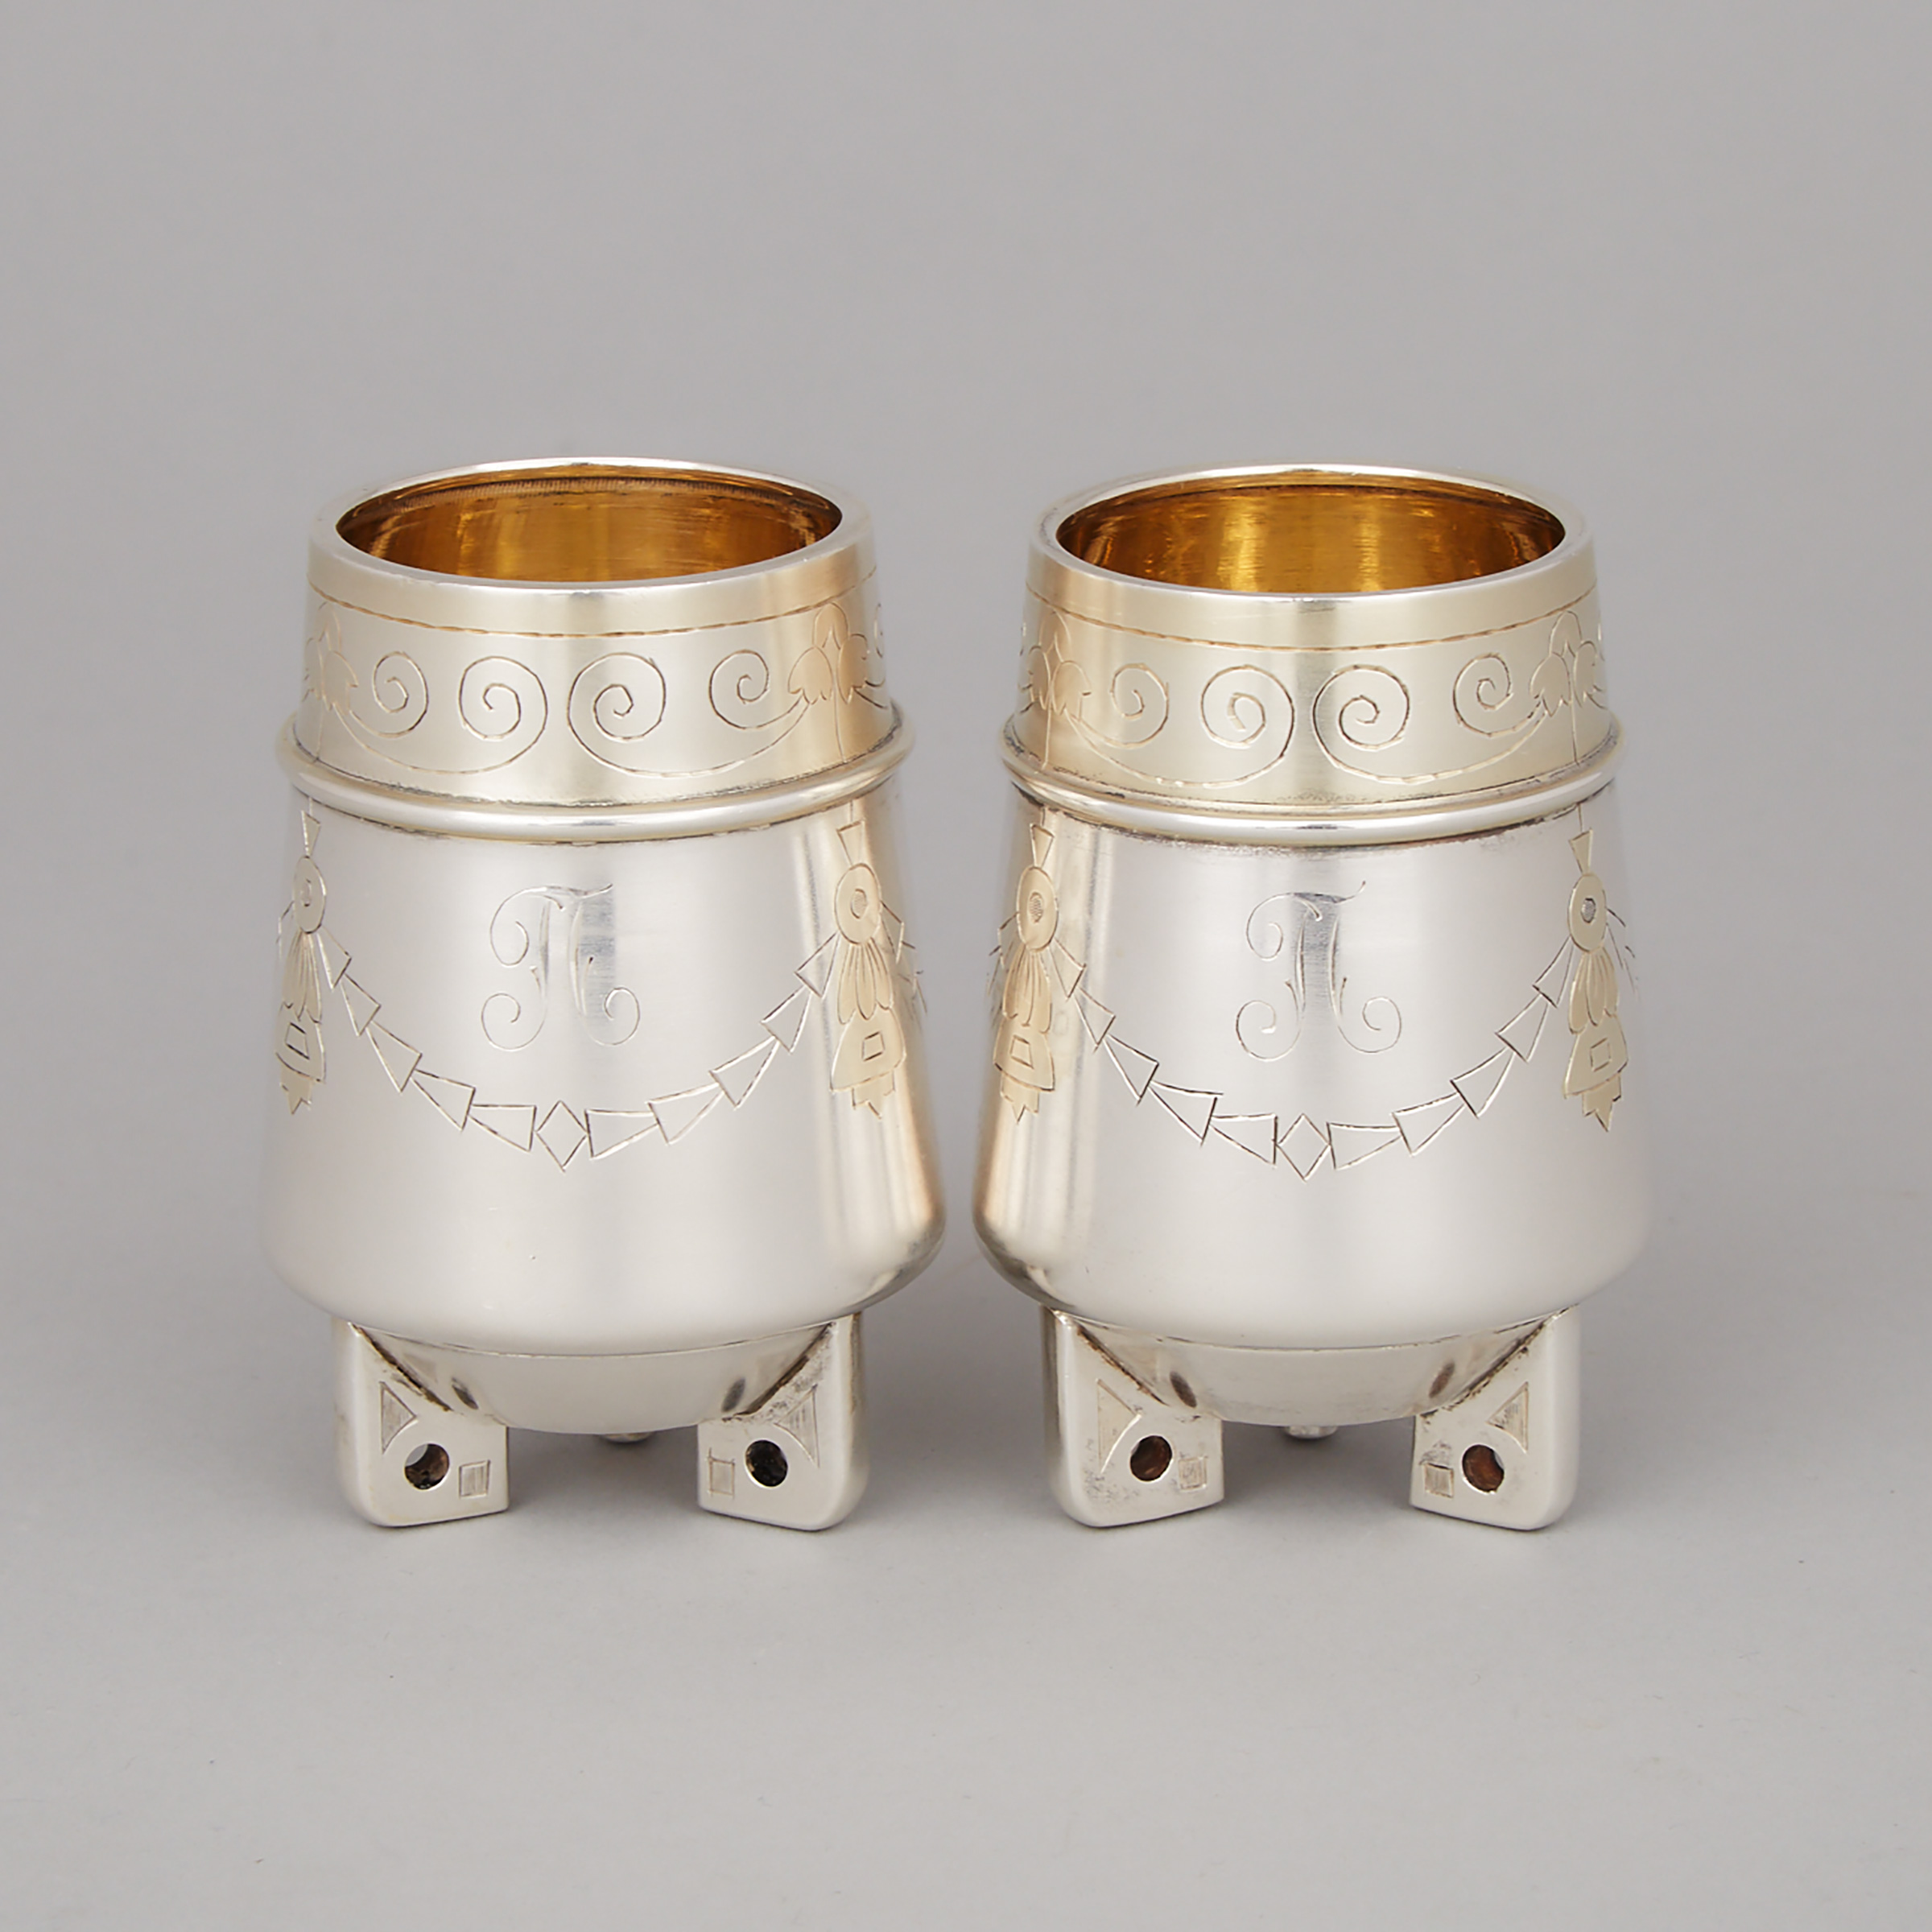 Pair of Russian Silver Small Vases, Ivan Khlebnikov, Moscow, c.1908-17